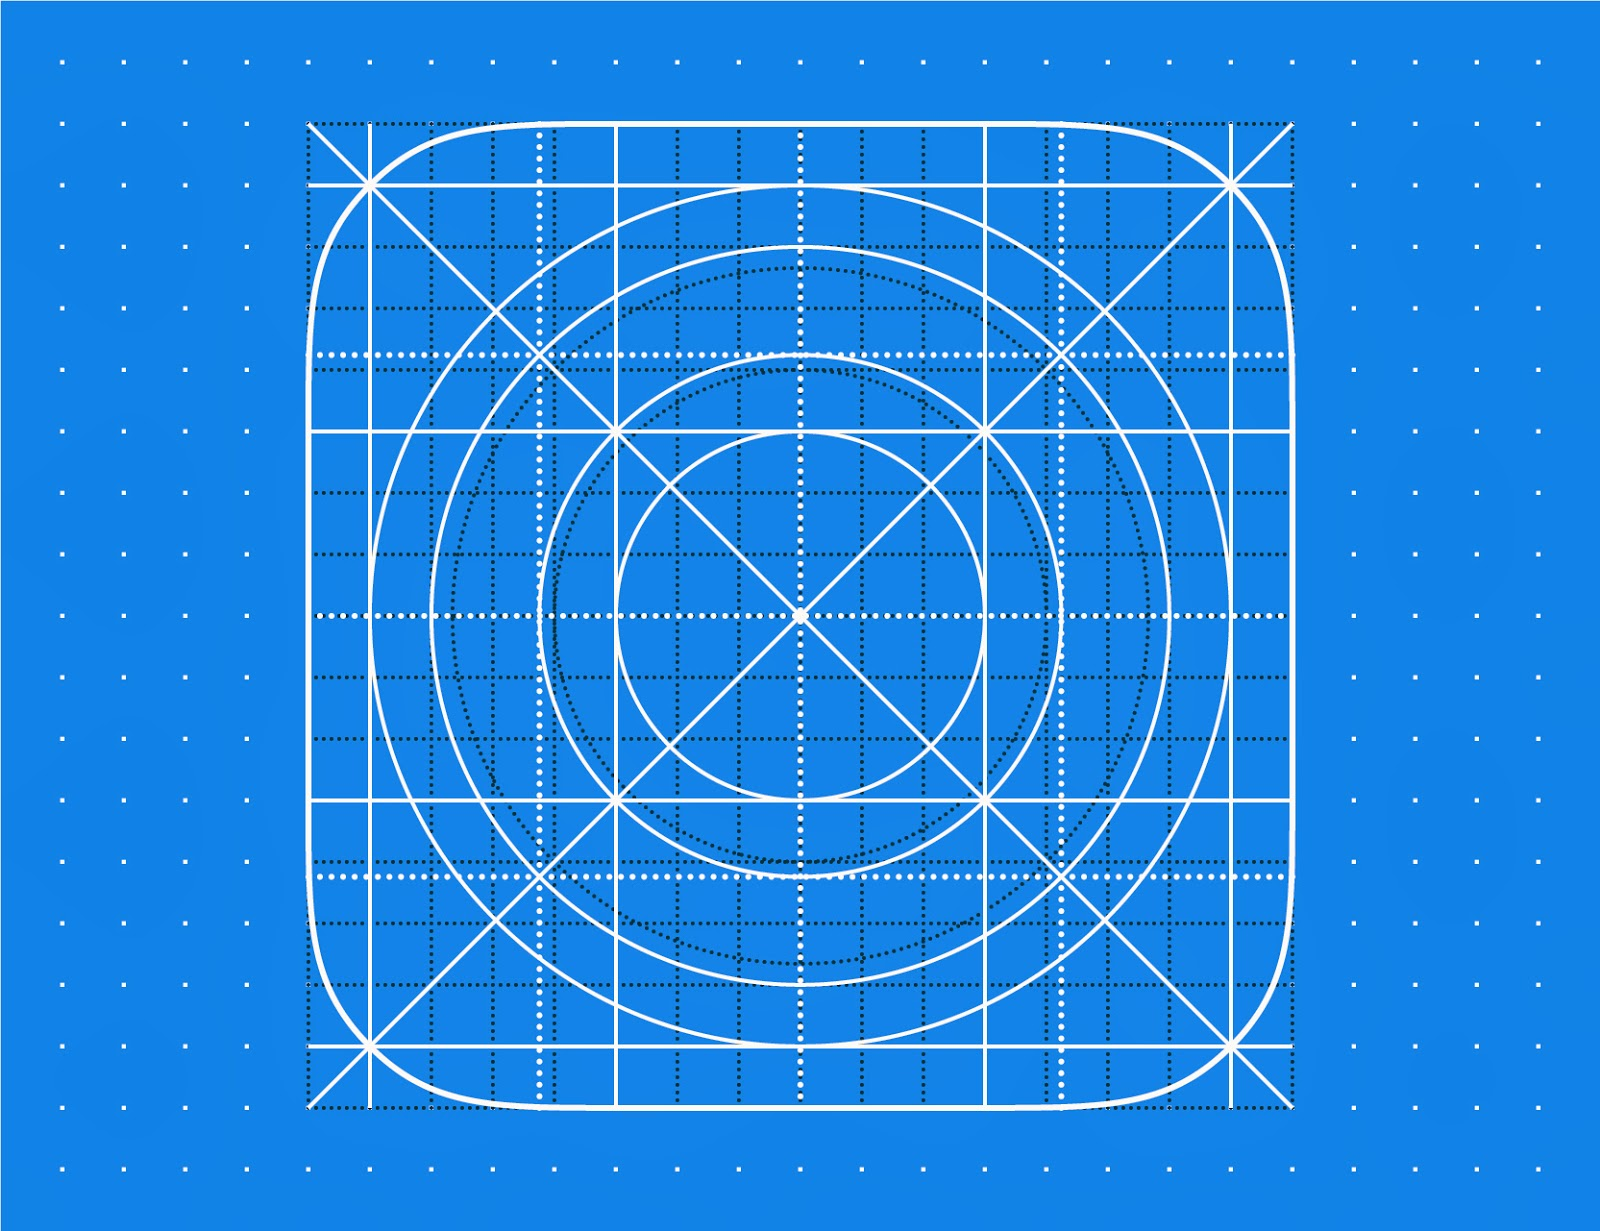 Download FREE EPS Design Graphic Art Vector Illustration: Get Freebies iOS 9 (iOS9), iOS 8 (iOS8) and iOS 7 (iOS7) Icon Grid Template. Vector illustration clip-art element for design saved in 8 eps